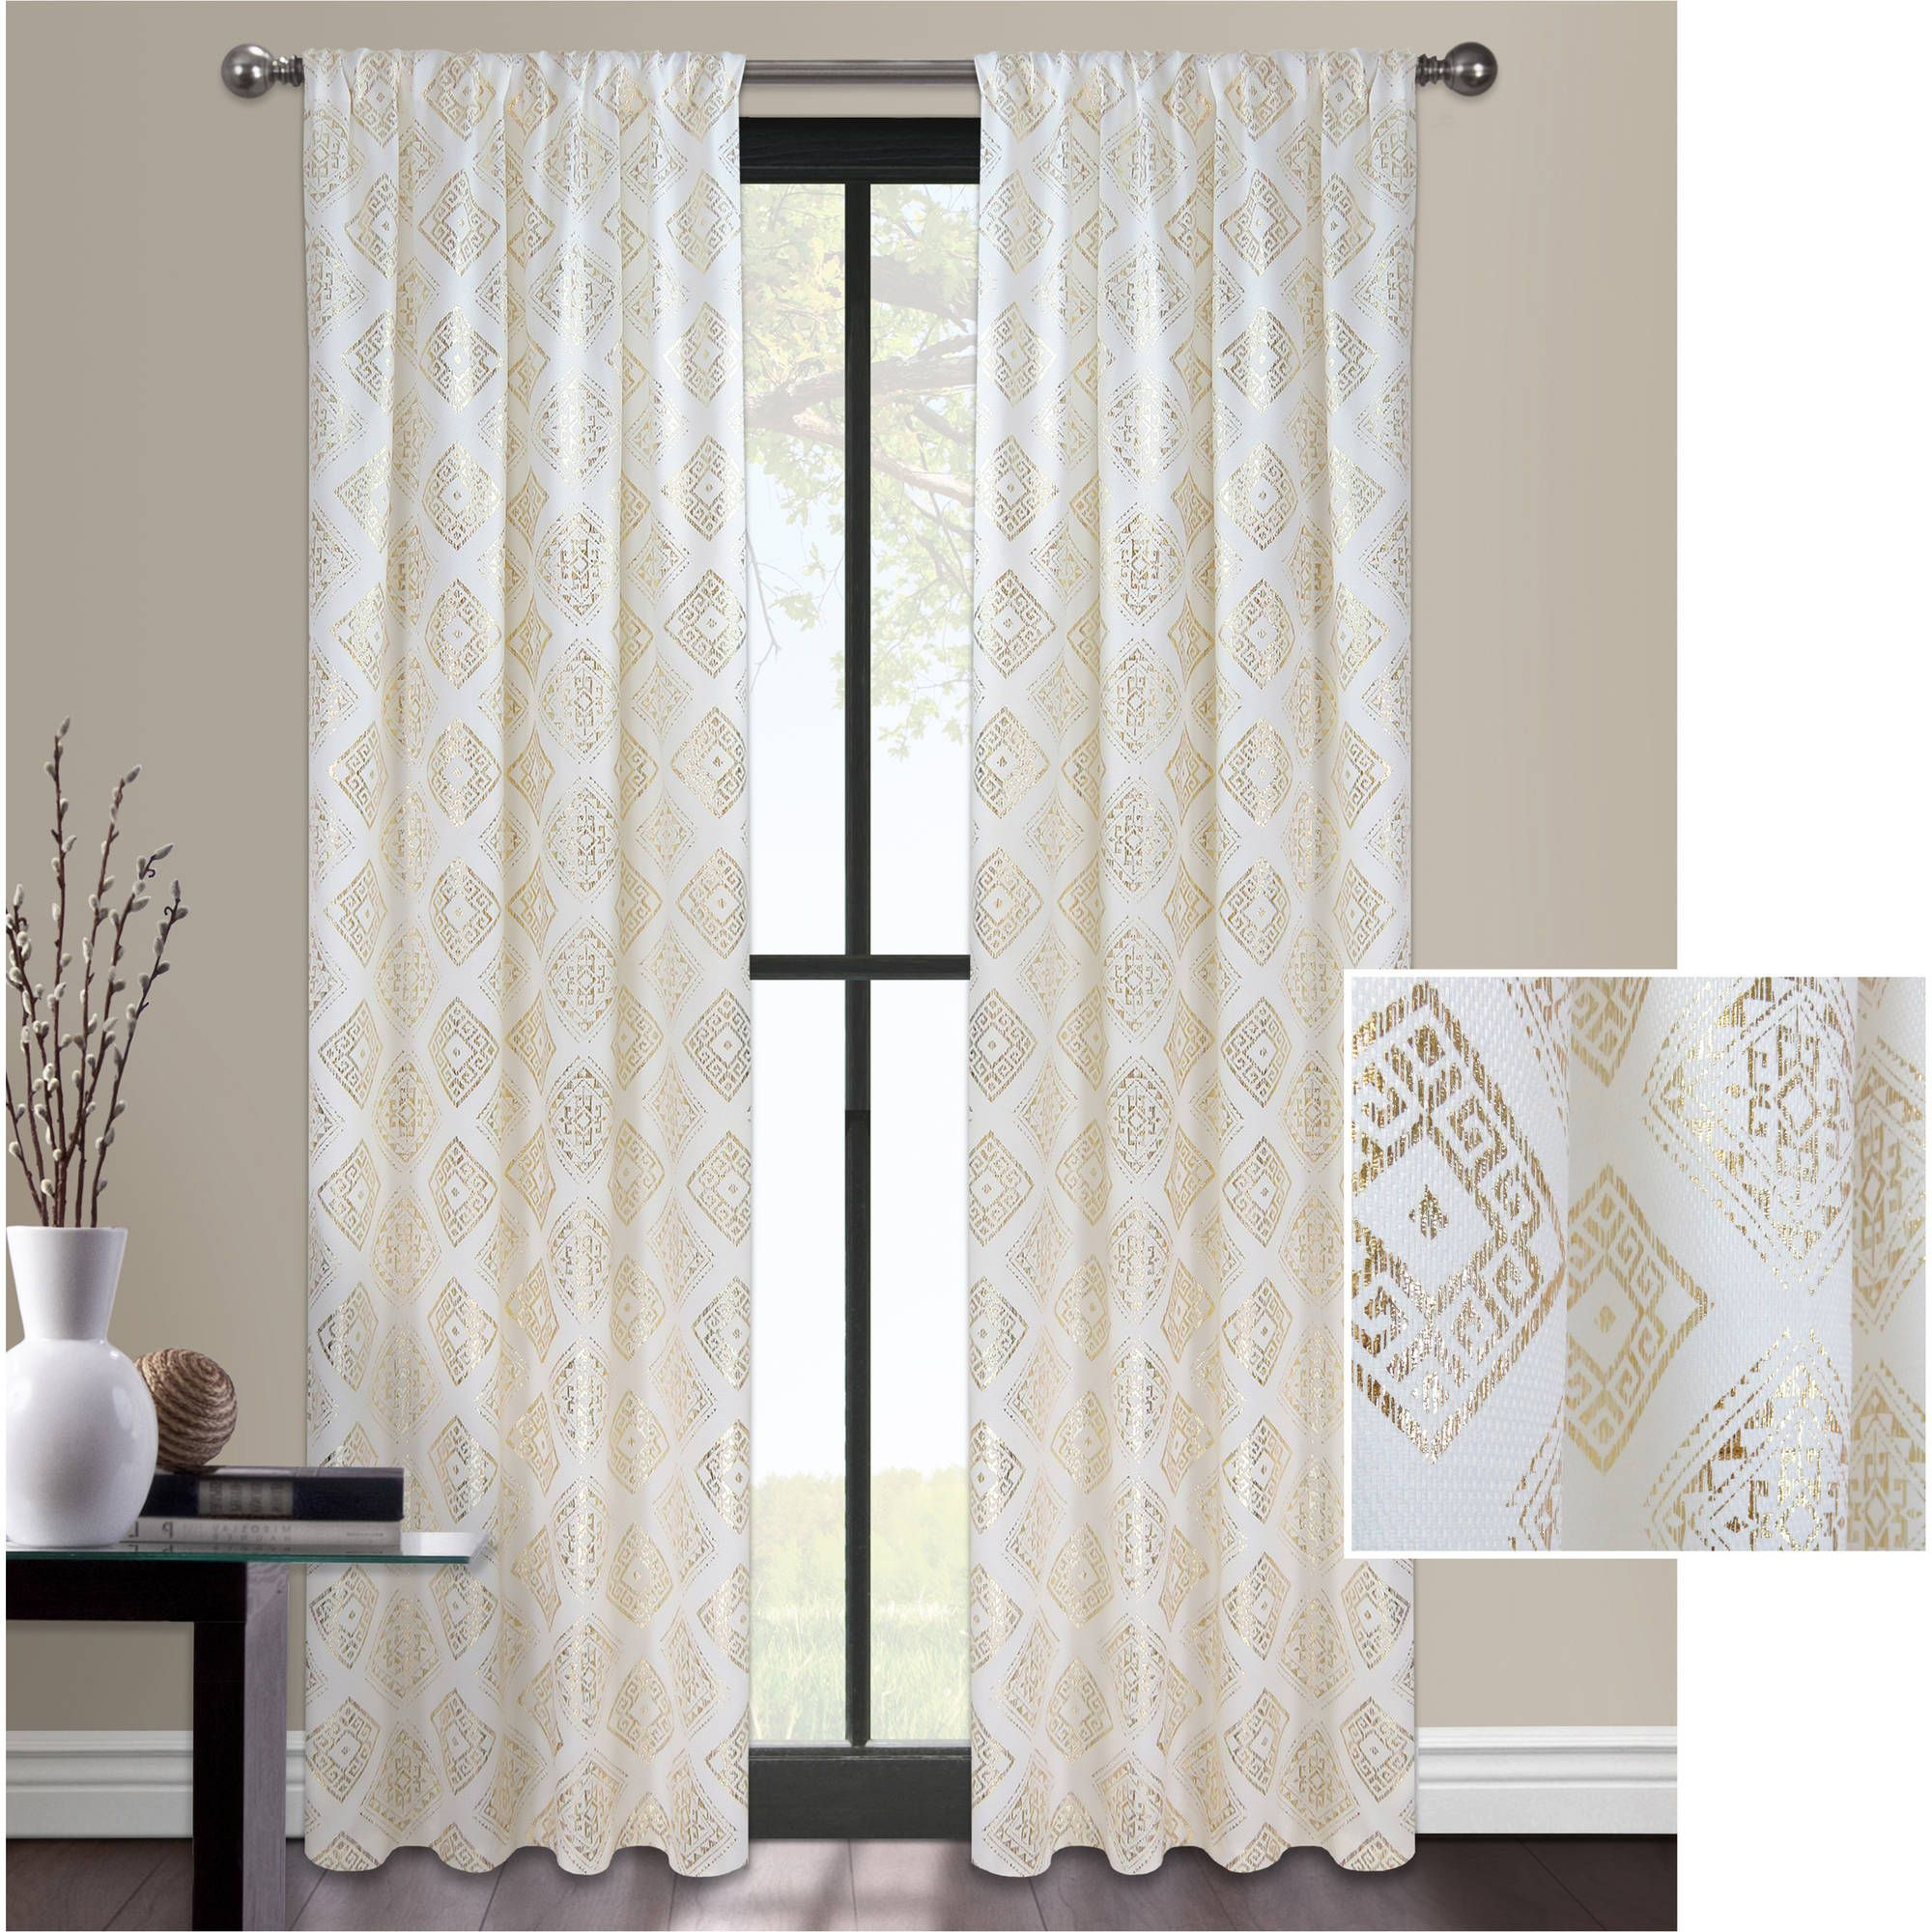 e340ac6823e94af92b6dda0022ed5068 - Better Homes And Gardens Airplanes Curtain Panel